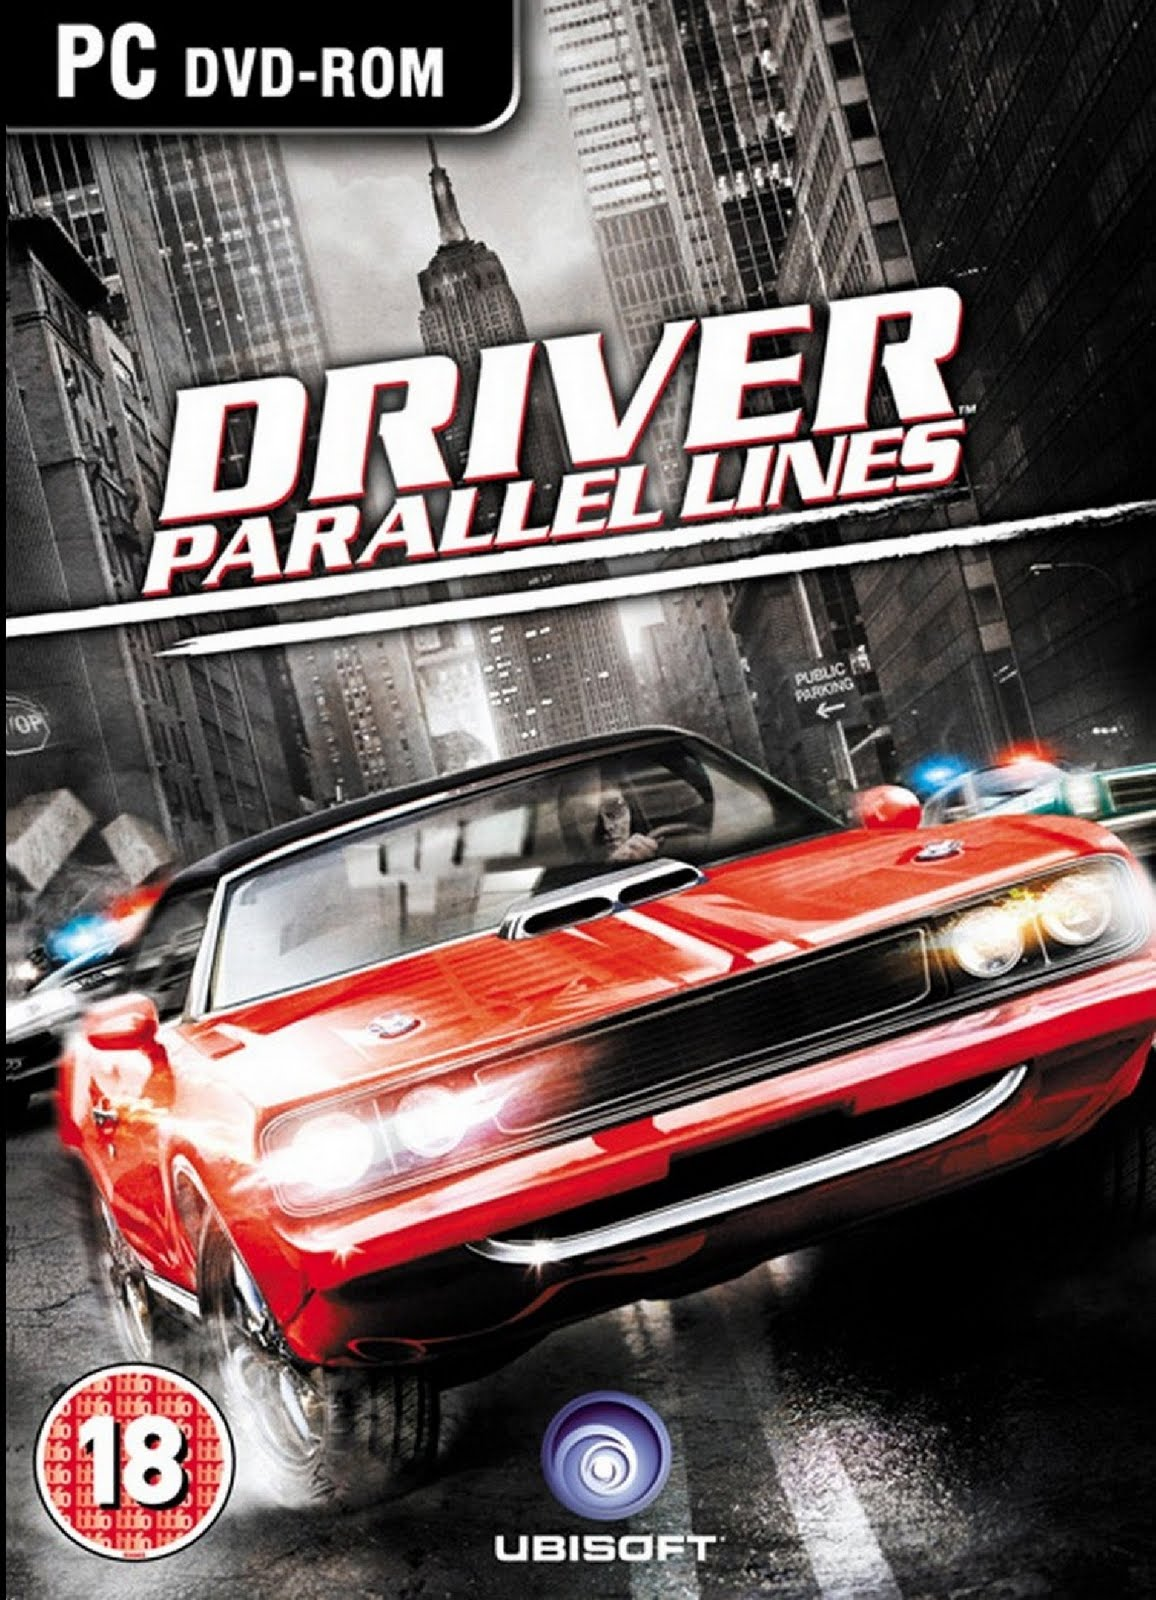 Dream Games: Driver Parallel Lines